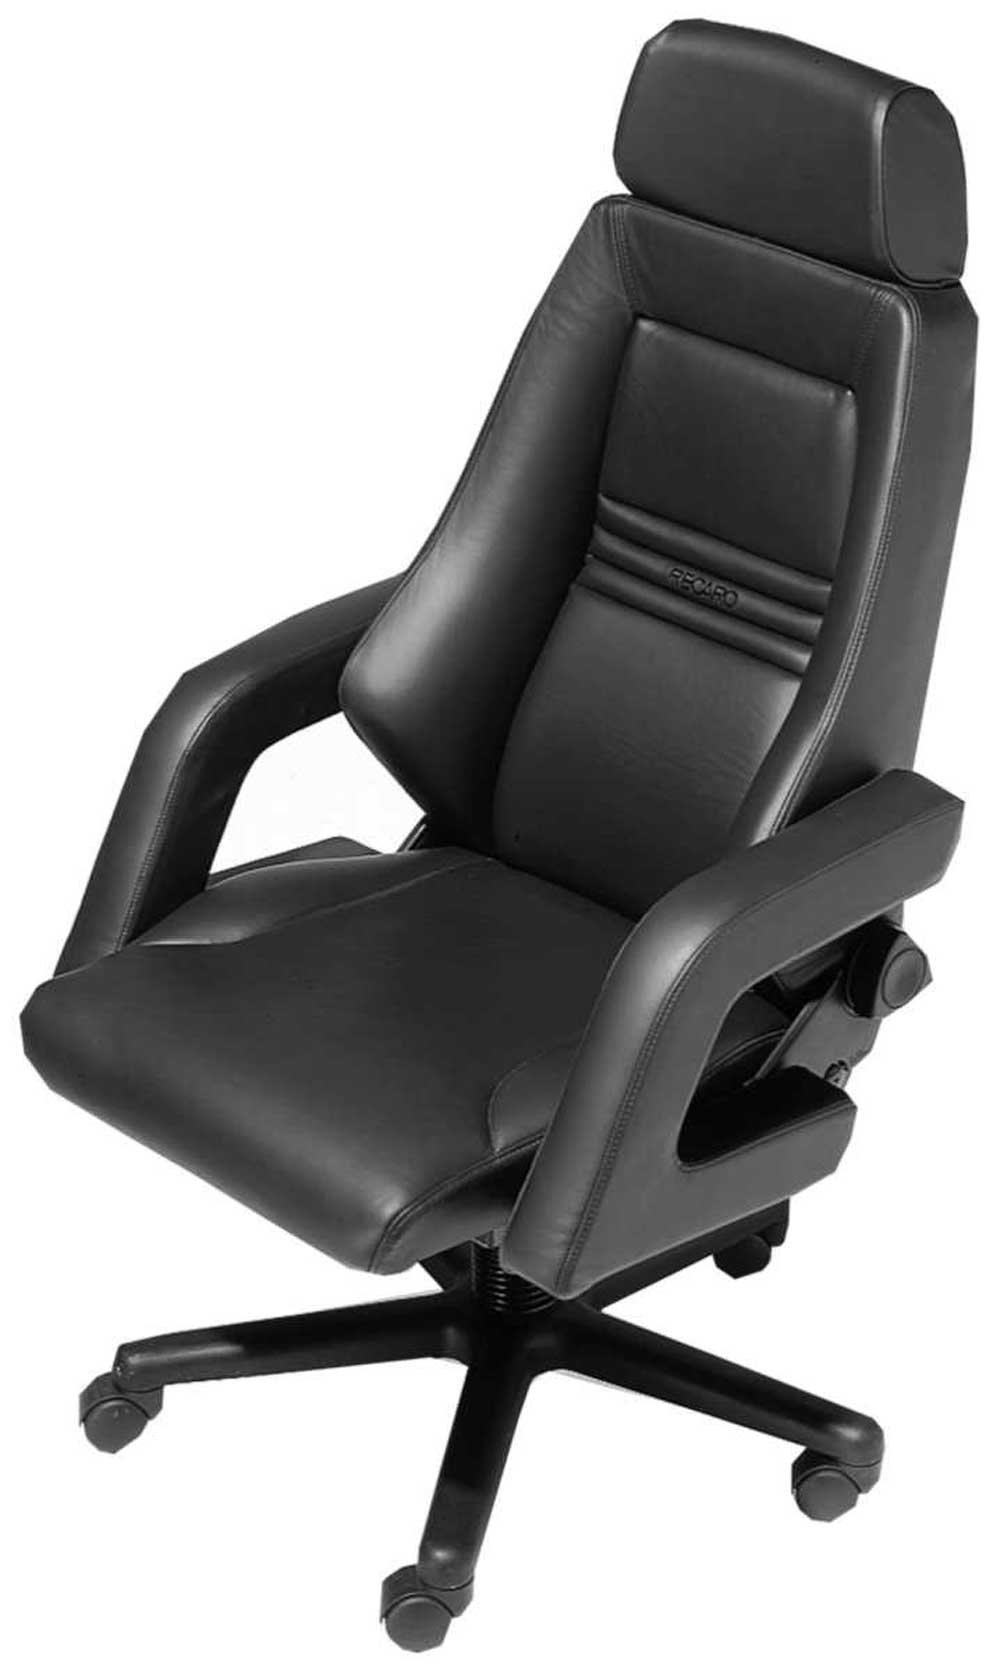 Modern ergonomic elegant black leather adjustable office chair